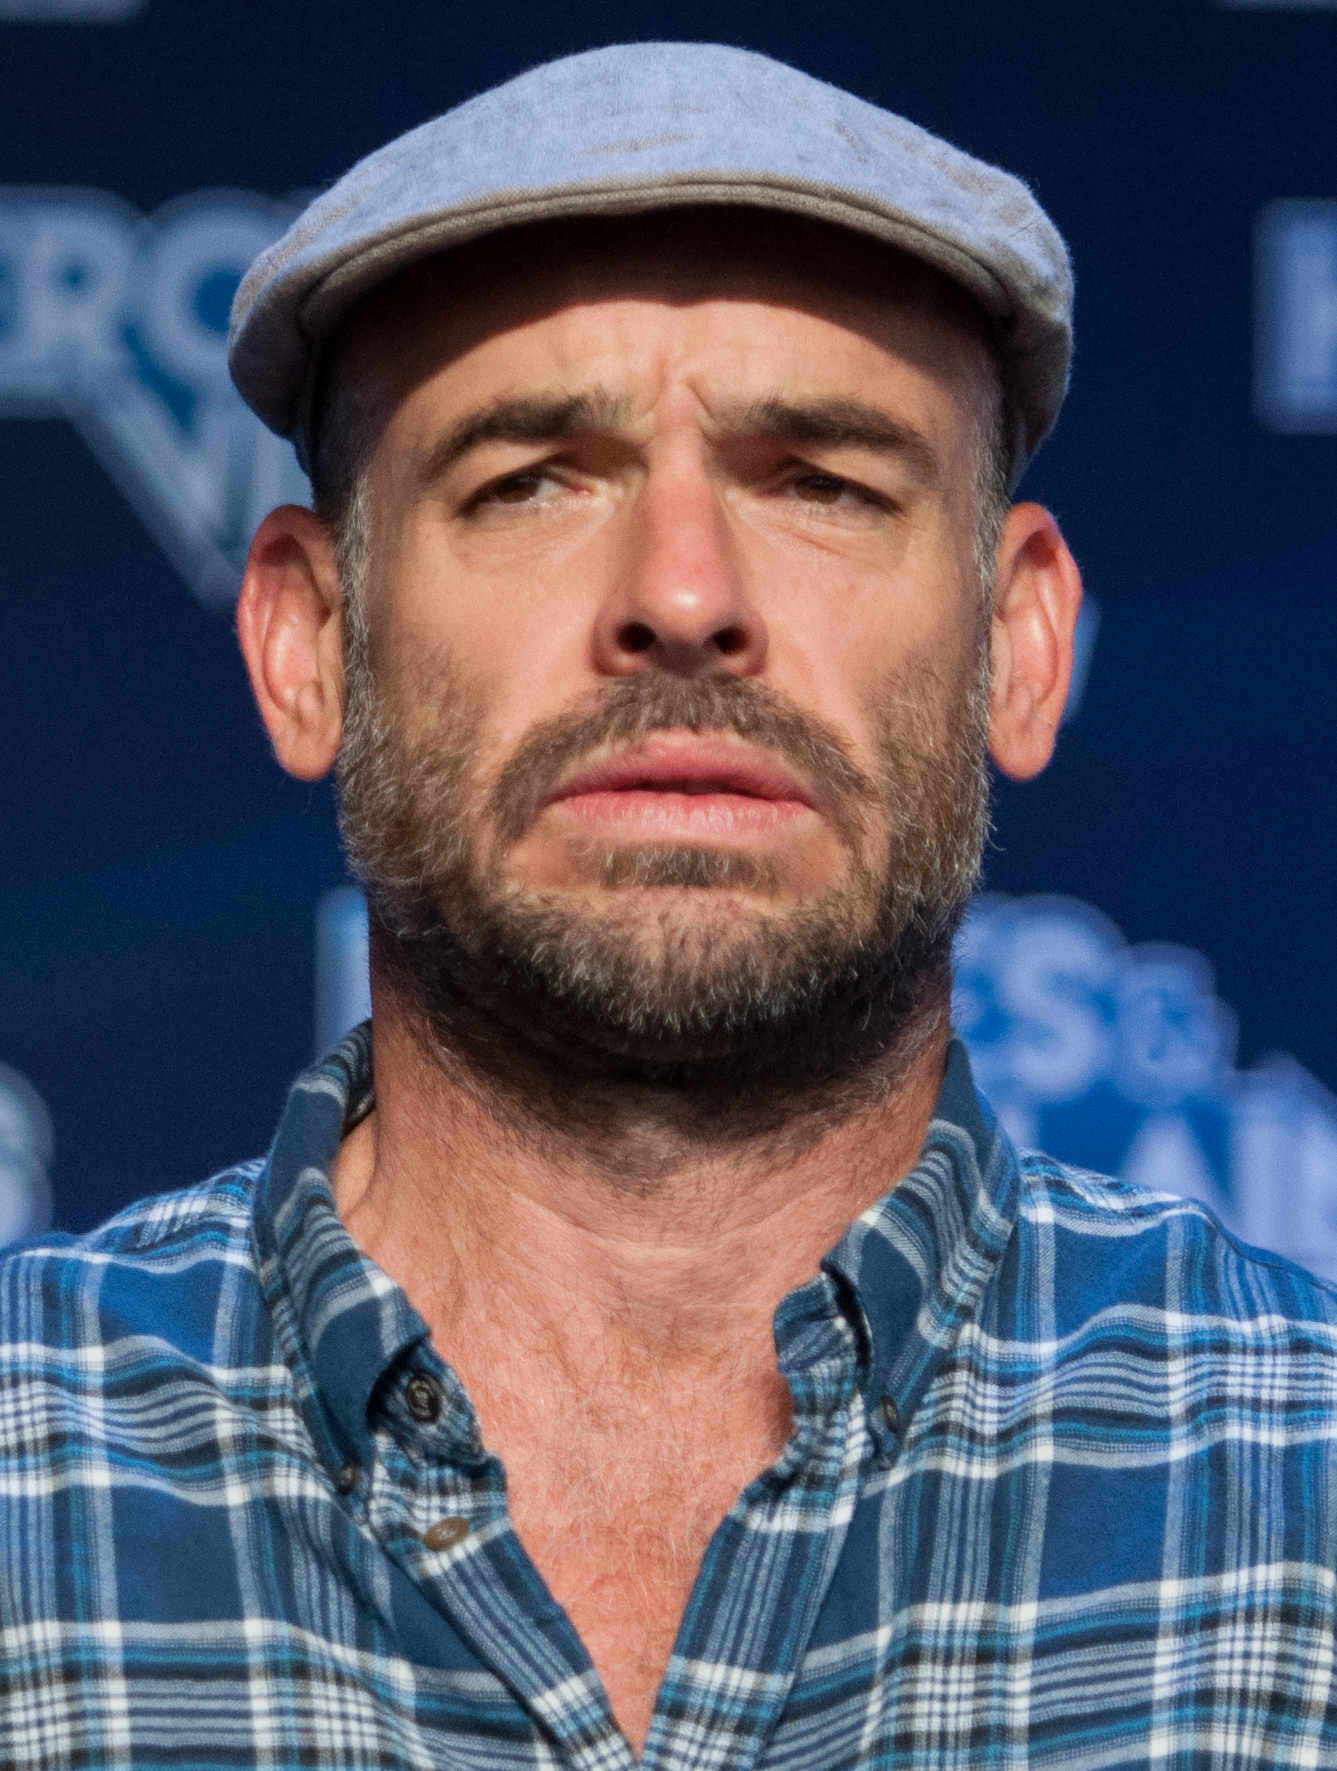 The 49-year old son of father (?) and mother(?) Paul Blackthorne in 2018 photo. Paul Blackthorne earned a  million dollar salary - leaving the net worth at 3 million in 2018